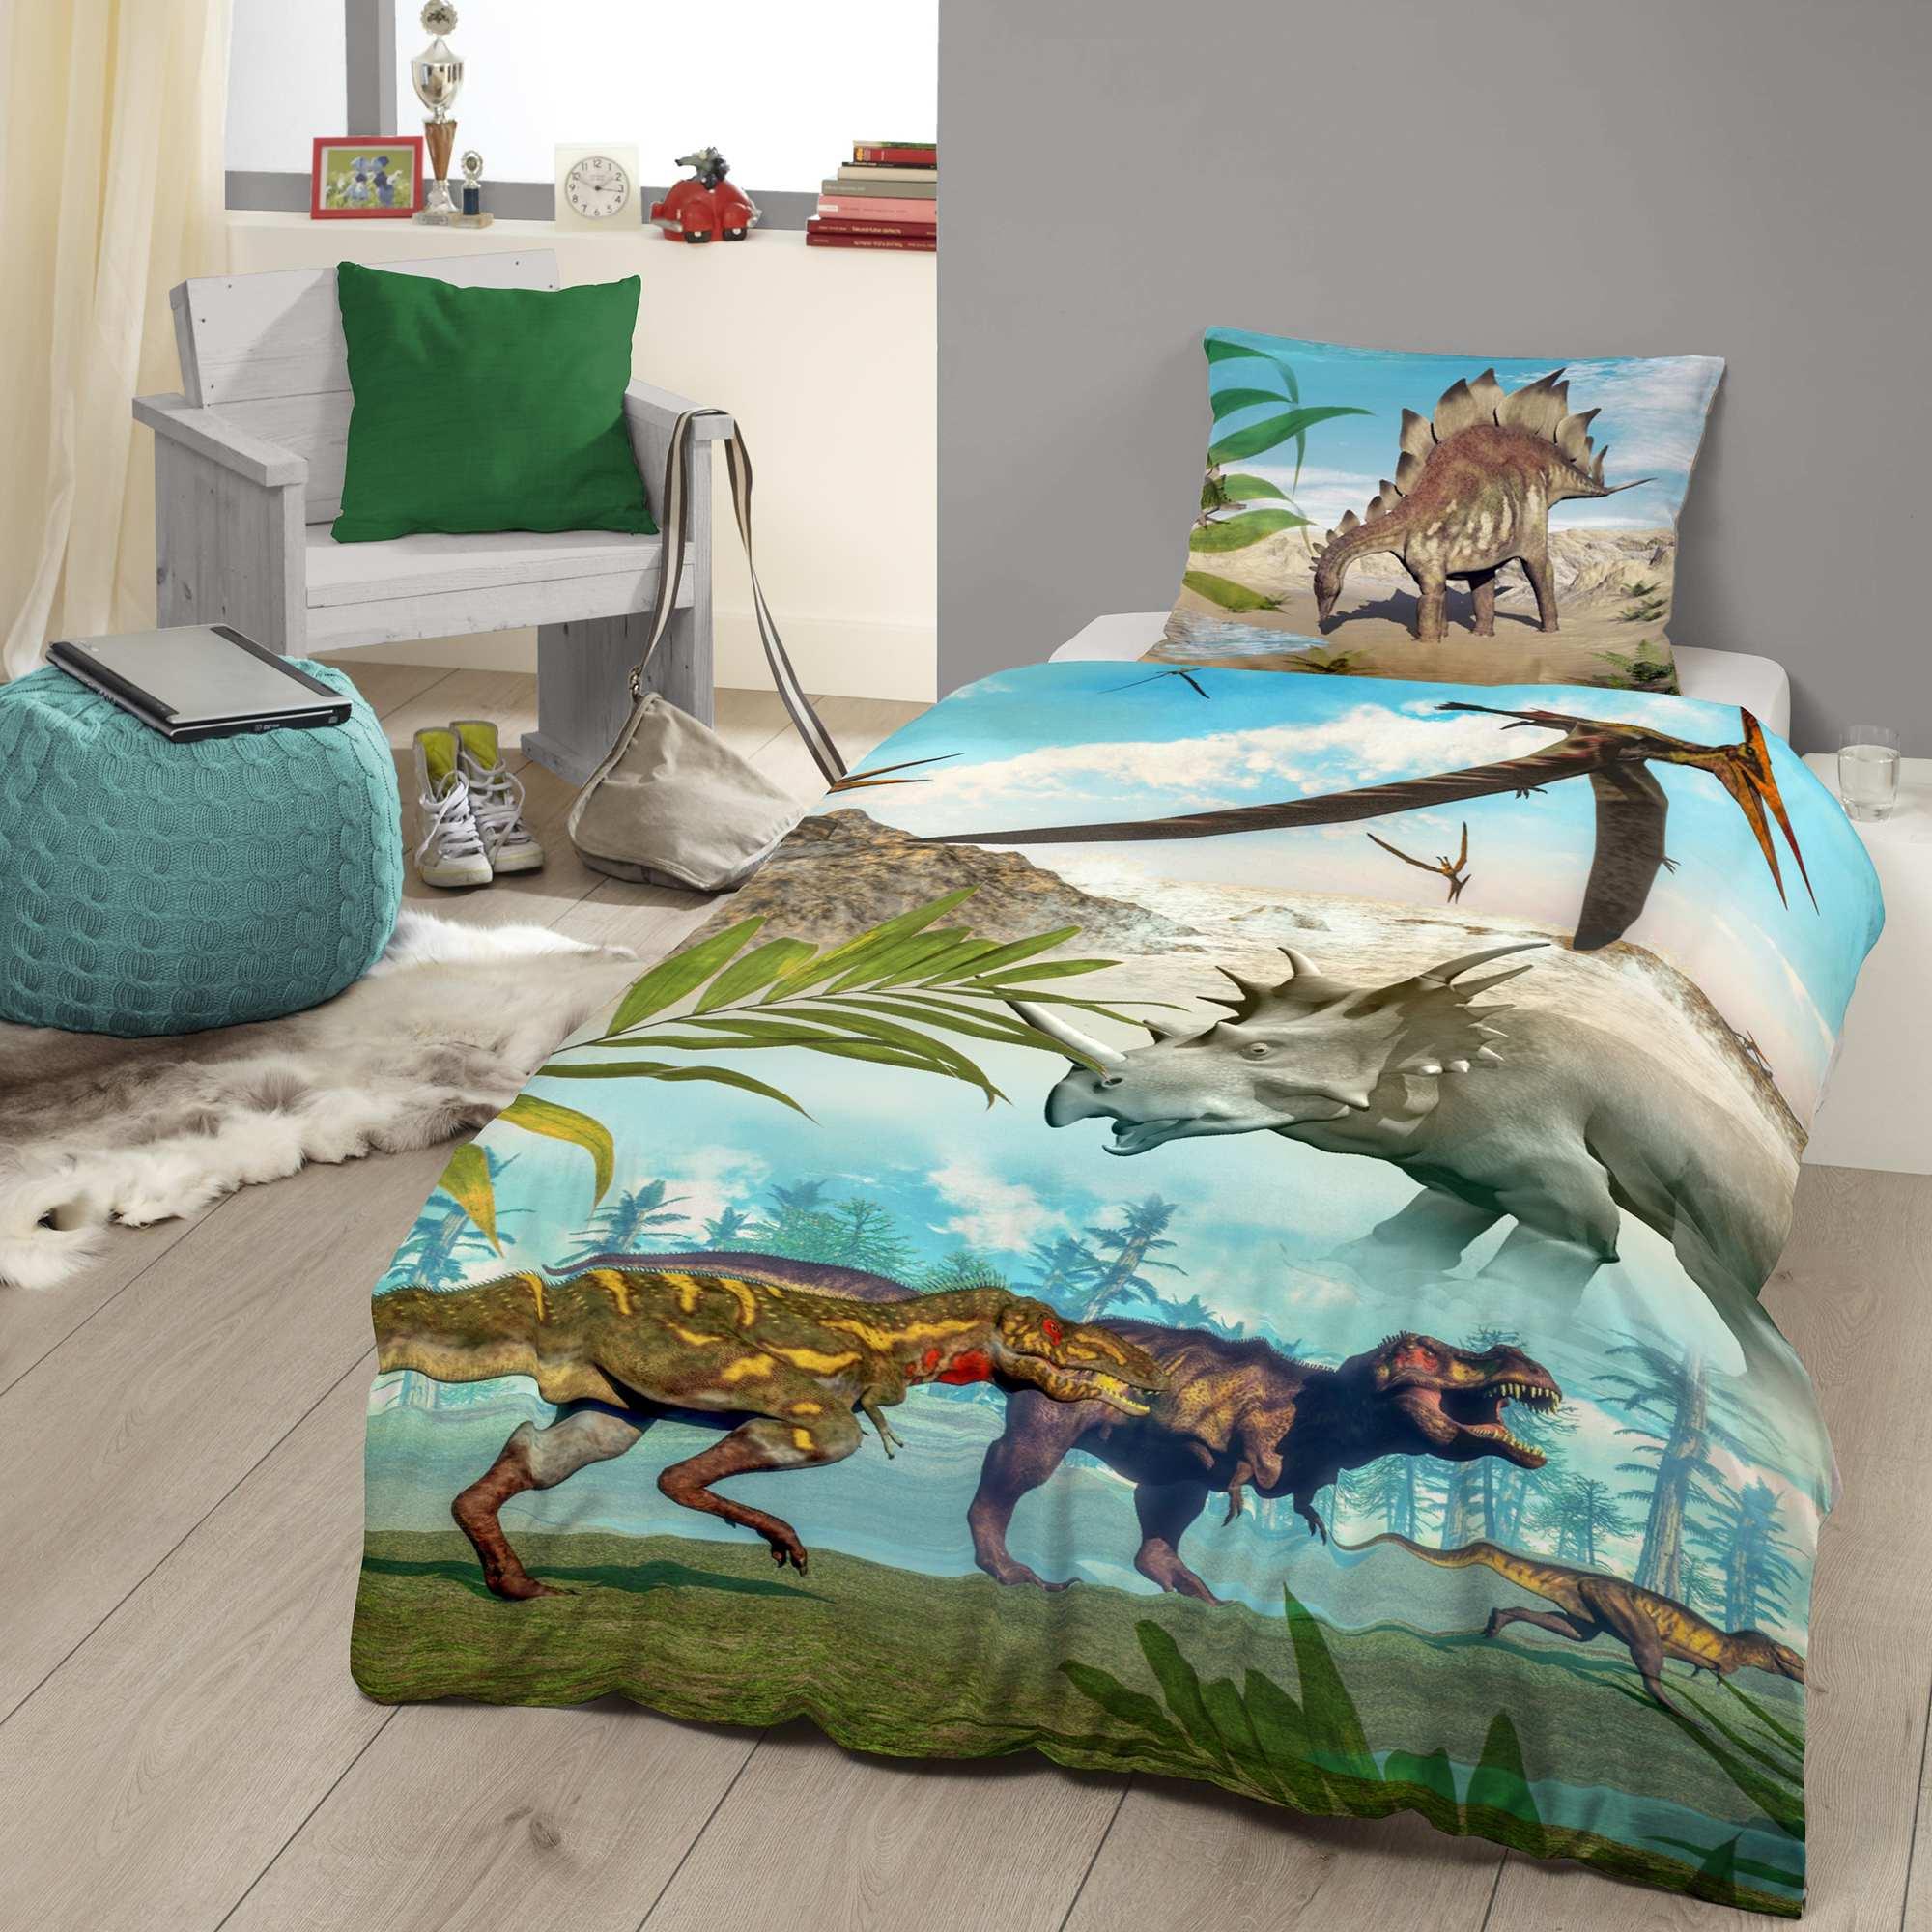 parure de lit imprim e 39 dinosaures 39 linge de lit kiabi 25 00. Black Bedroom Furniture Sets. Home Design Ideas